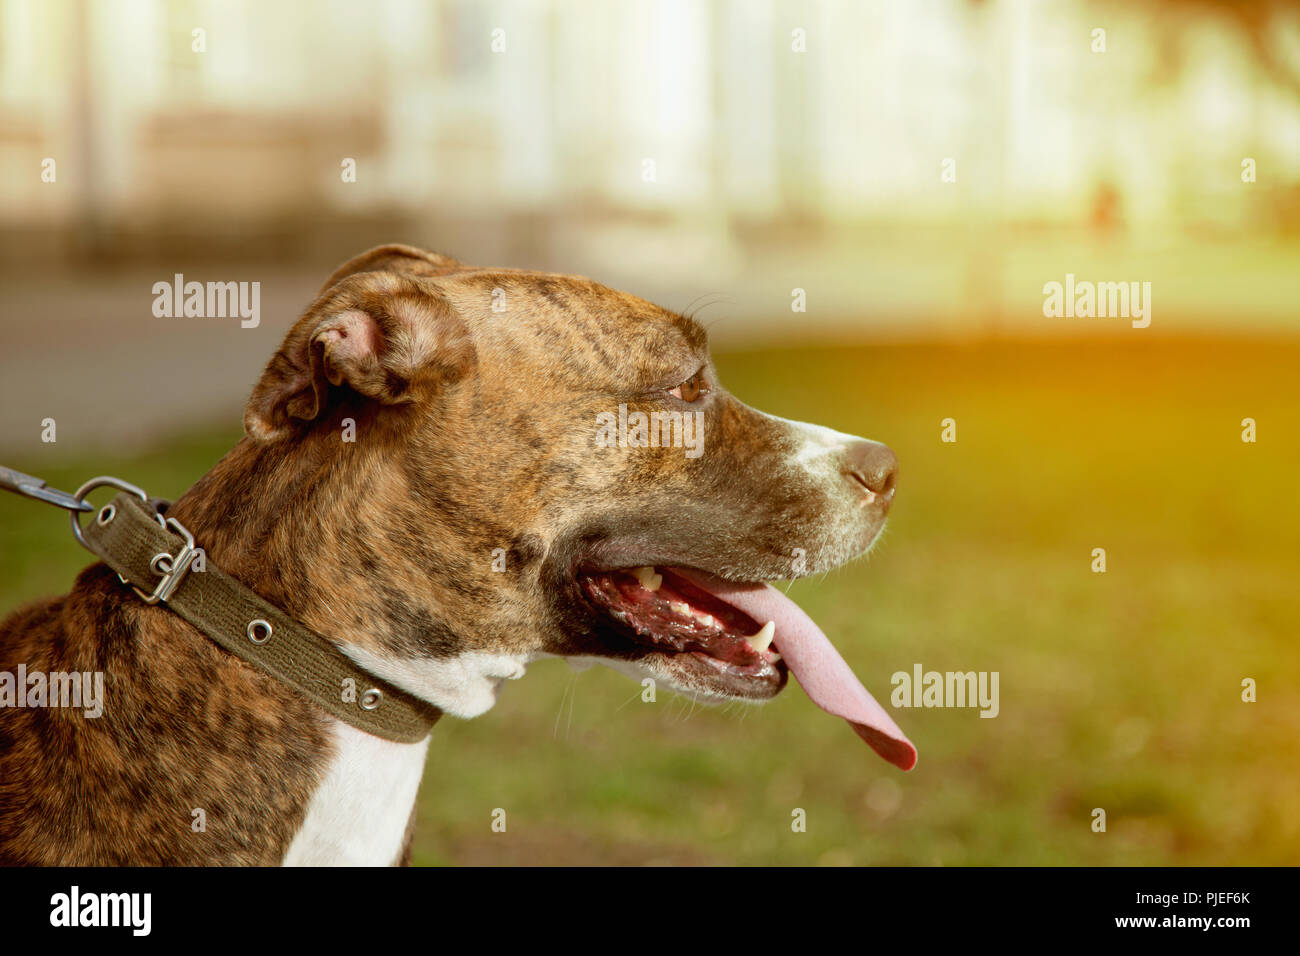 dog on a leash, for a walk, Staffordshire terrier. - Stock Image